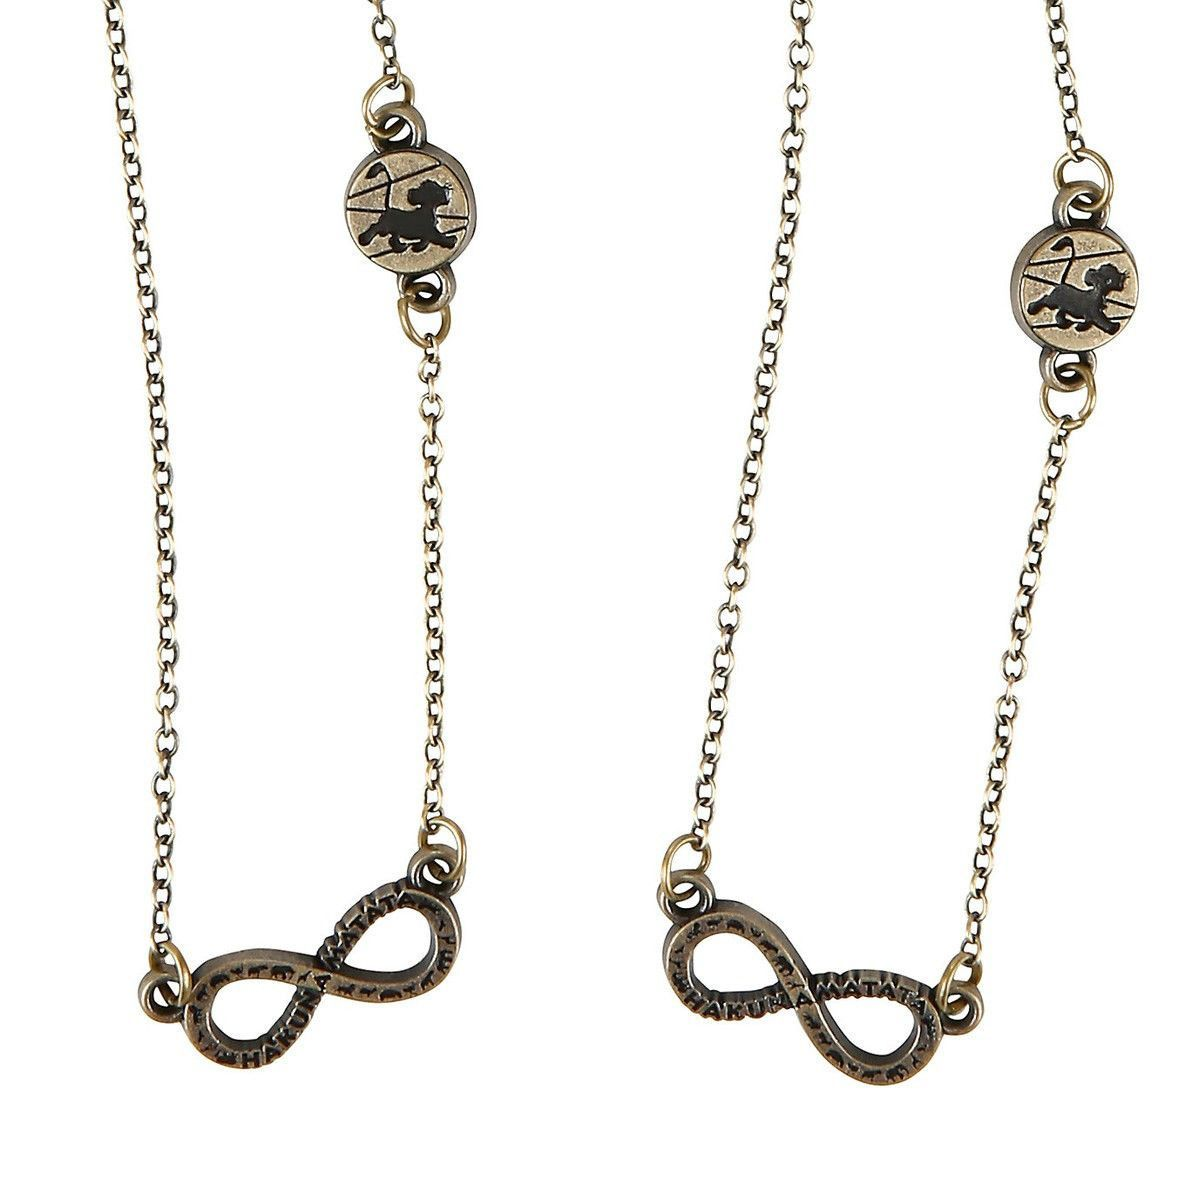 Brand Disney Material Base Metal Style Pendant Length Inches